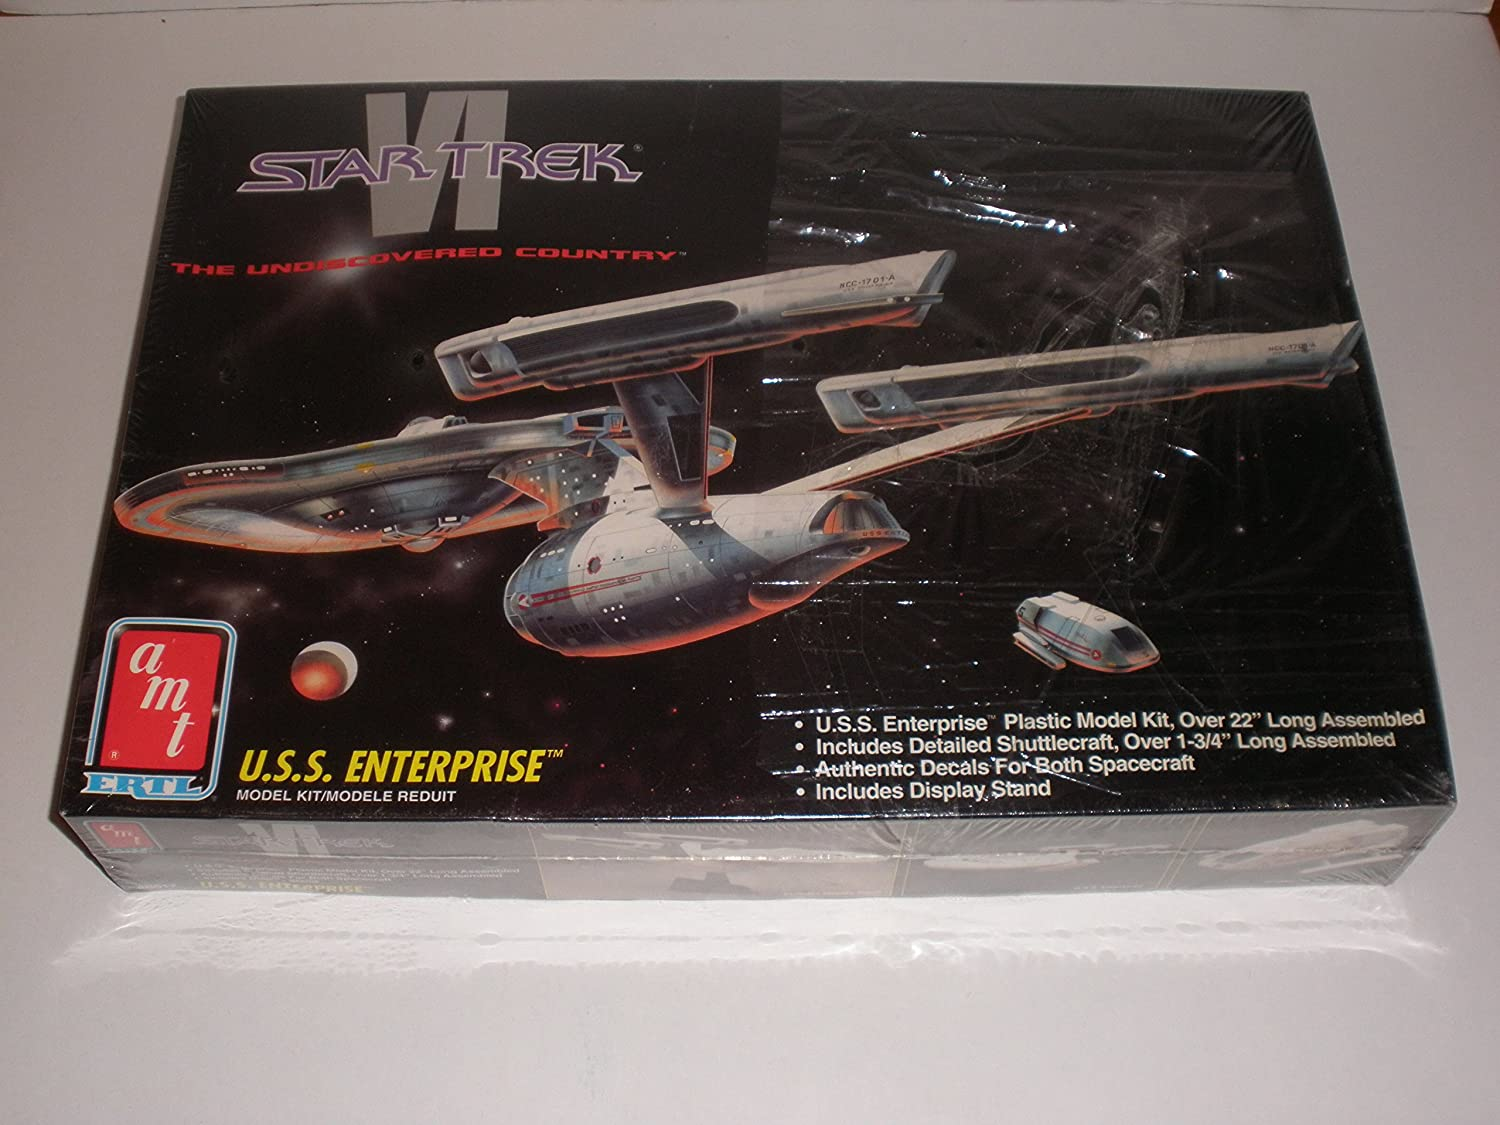 Star Trek The Undiscovered Country U.S.S. Enterprise Model Kit by AMT ERTL